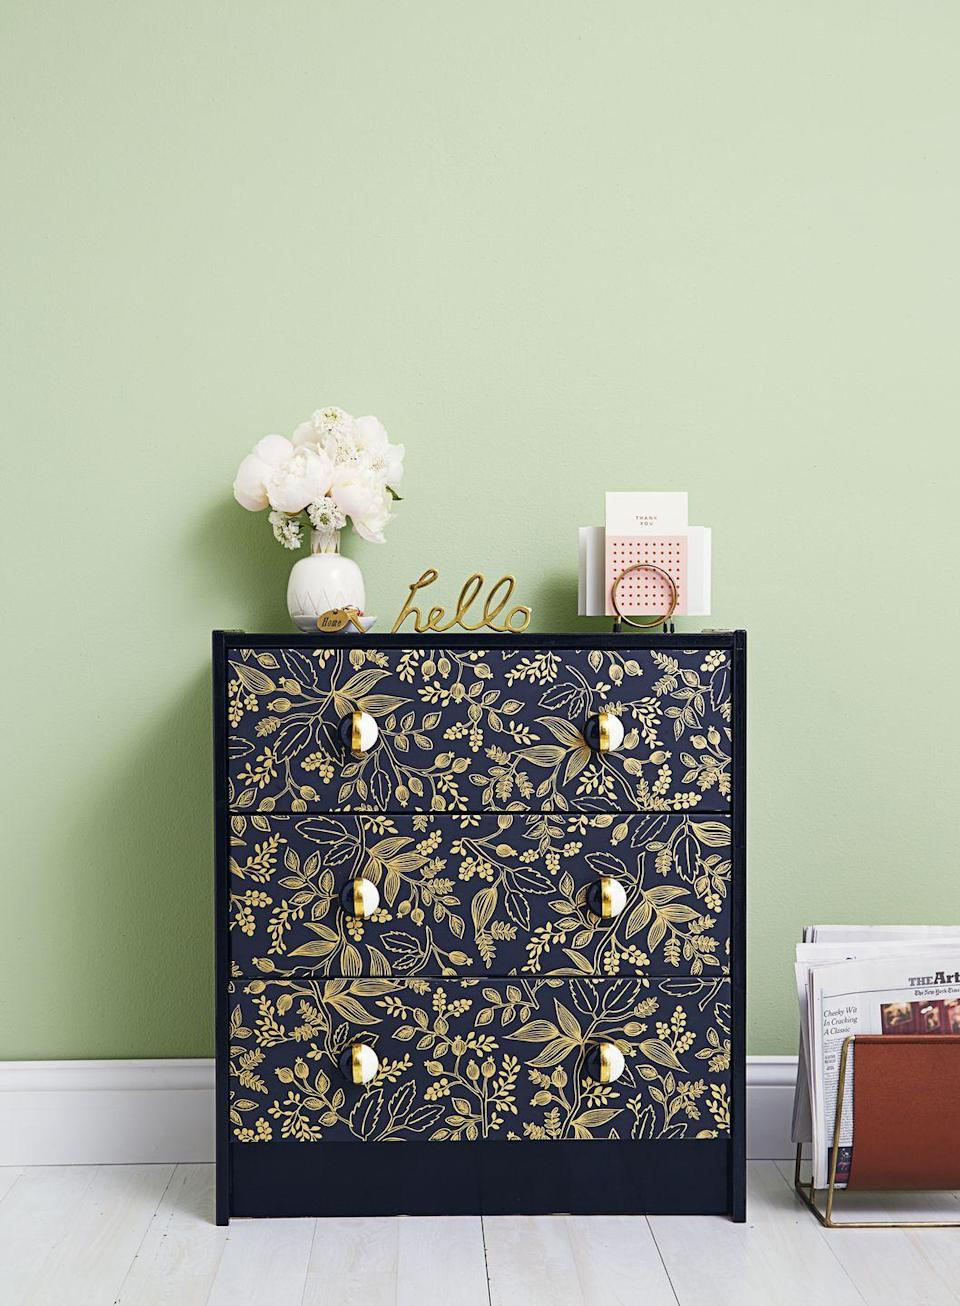 """<p>Spruce up a chest of drawers with new hardware, paint, and wallpaper. Even a medley of wallpaper samples can get the job, if you're looking for a thrifty solution. </p><p><em><a href=""""https://www.goodhousekeeping.com/home/craft-ideas/g3315/rast-ikea-dresser-hacks/"""" rel=""""nofollow noopener"""" target=""""_blank"""" data-ylk=""""slk:Get the tutorial »"""" class=""""link rapid-noclick-resp"""">Get the tutorial »</a></em> </p>"""